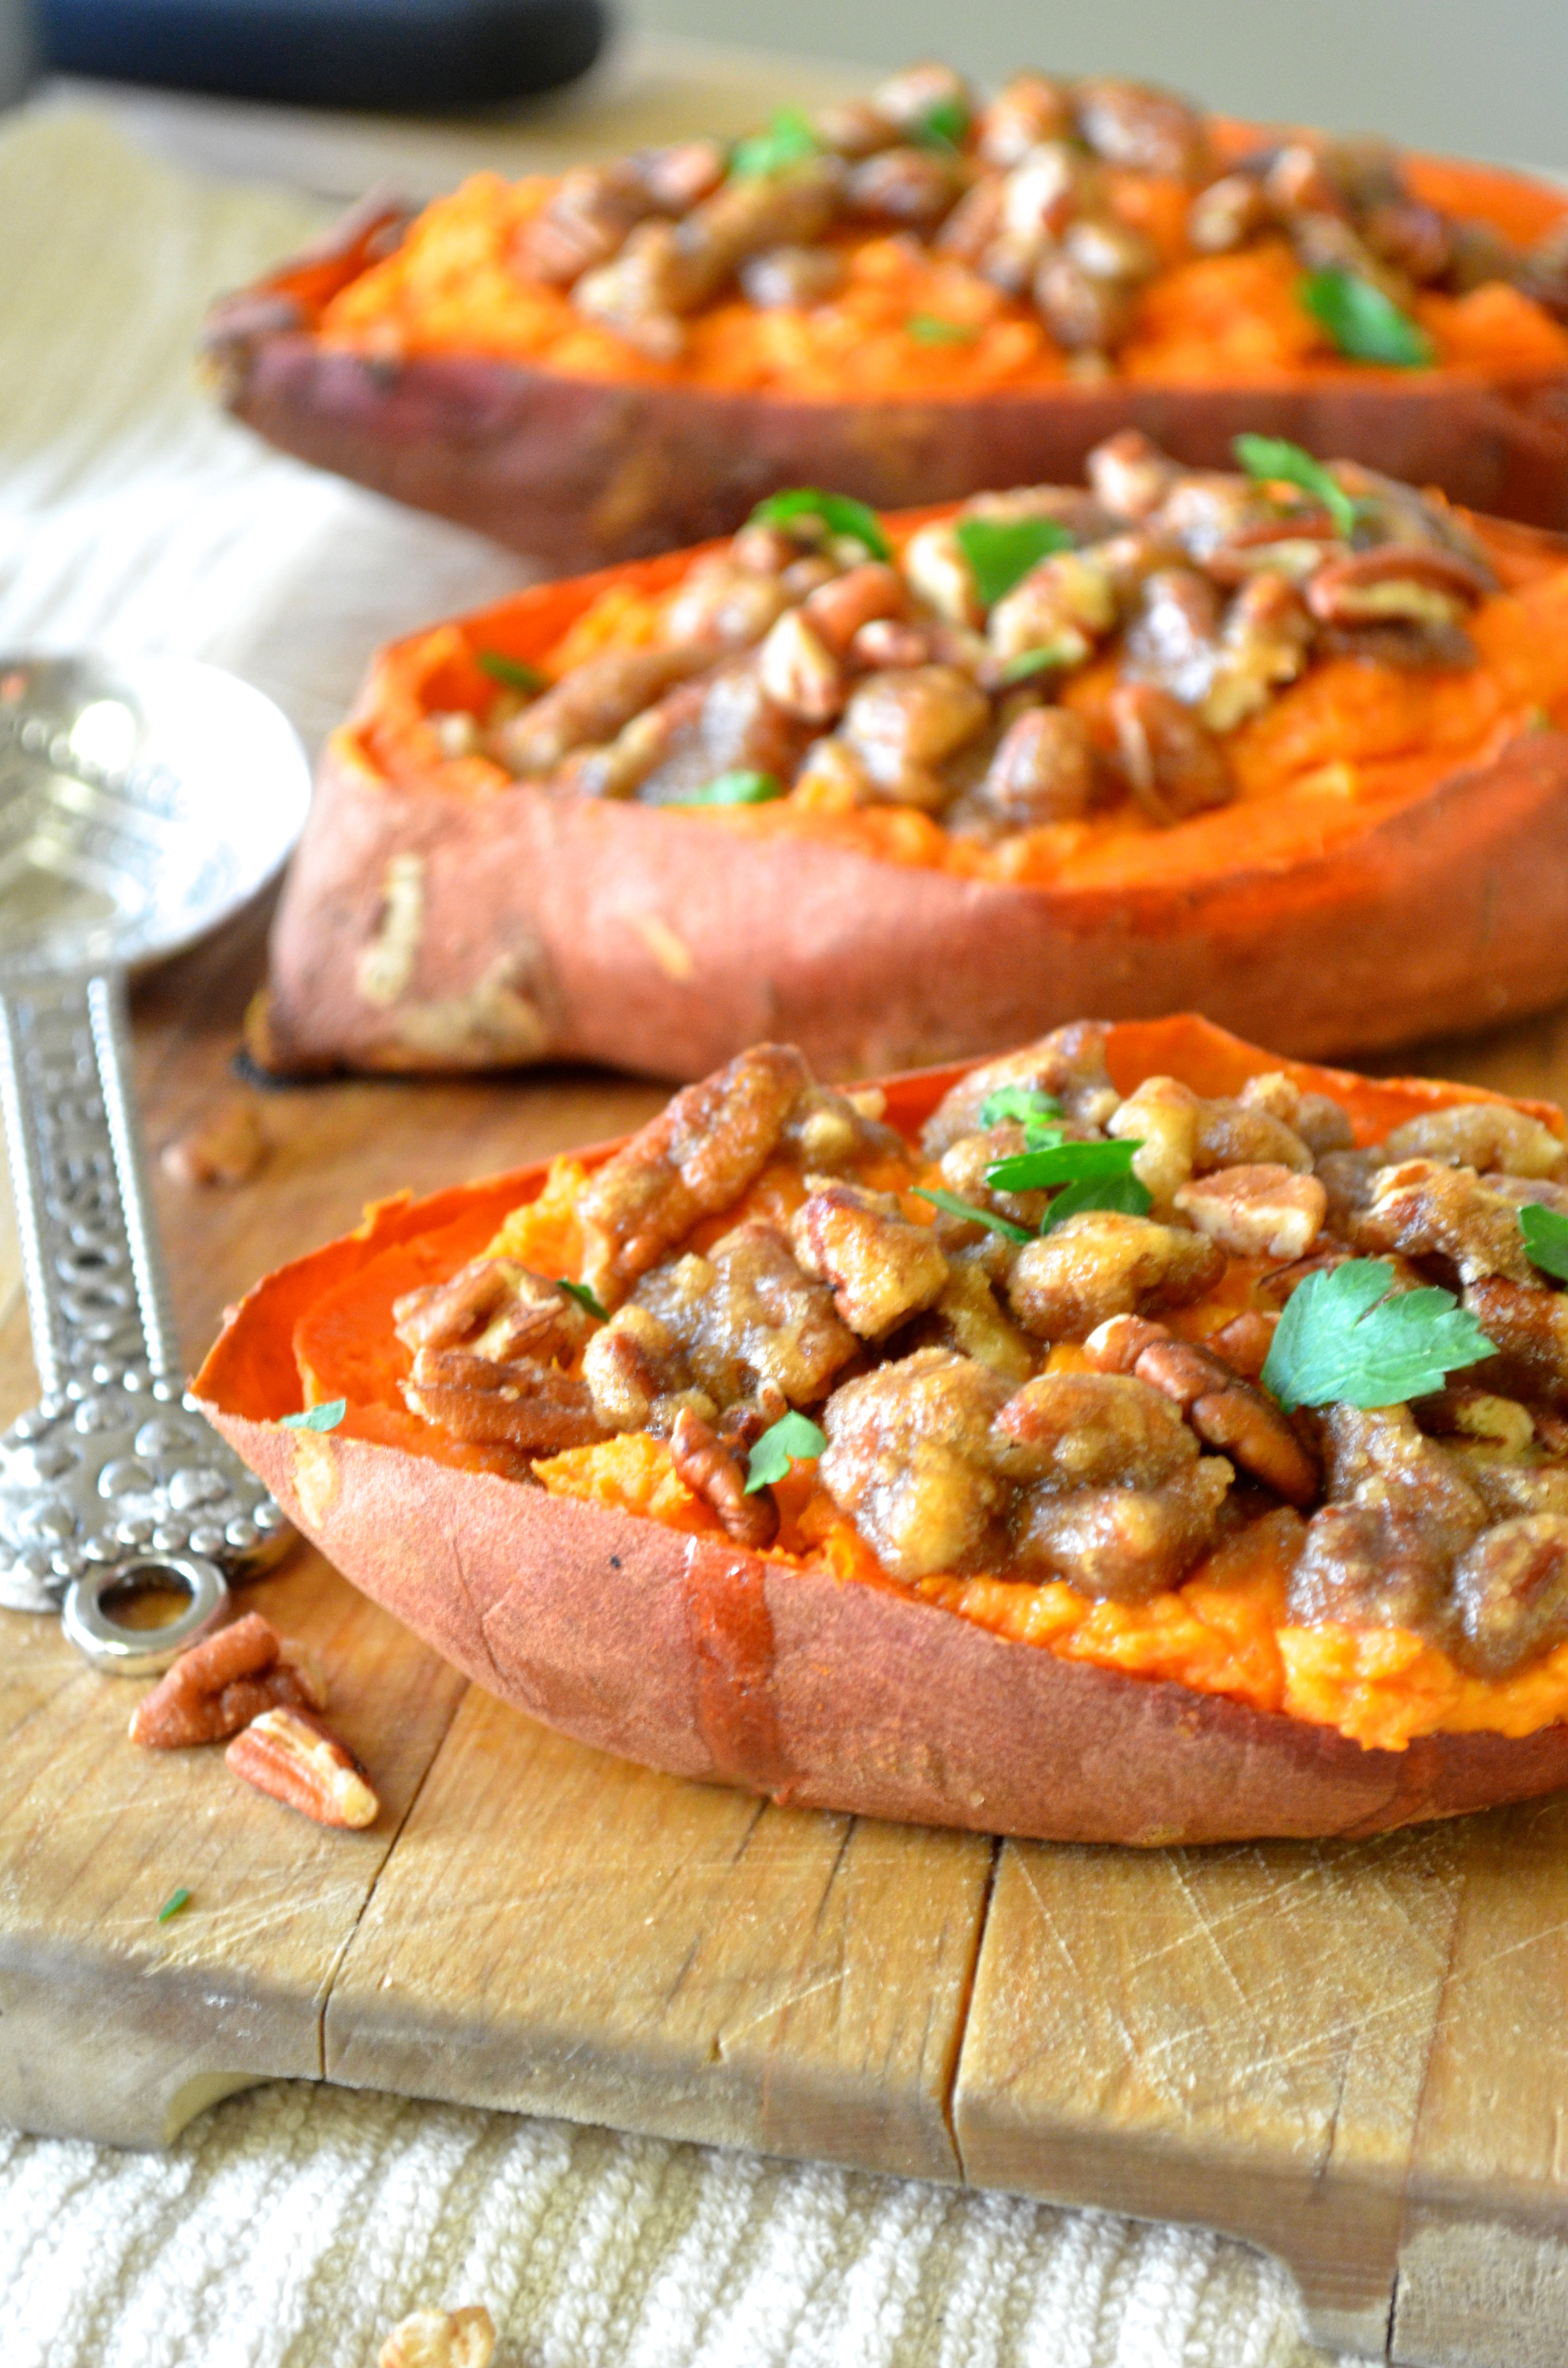 Baked Sweet Potato Recipe  Twice Baked Sweet Potatoes with Pecan Streusel